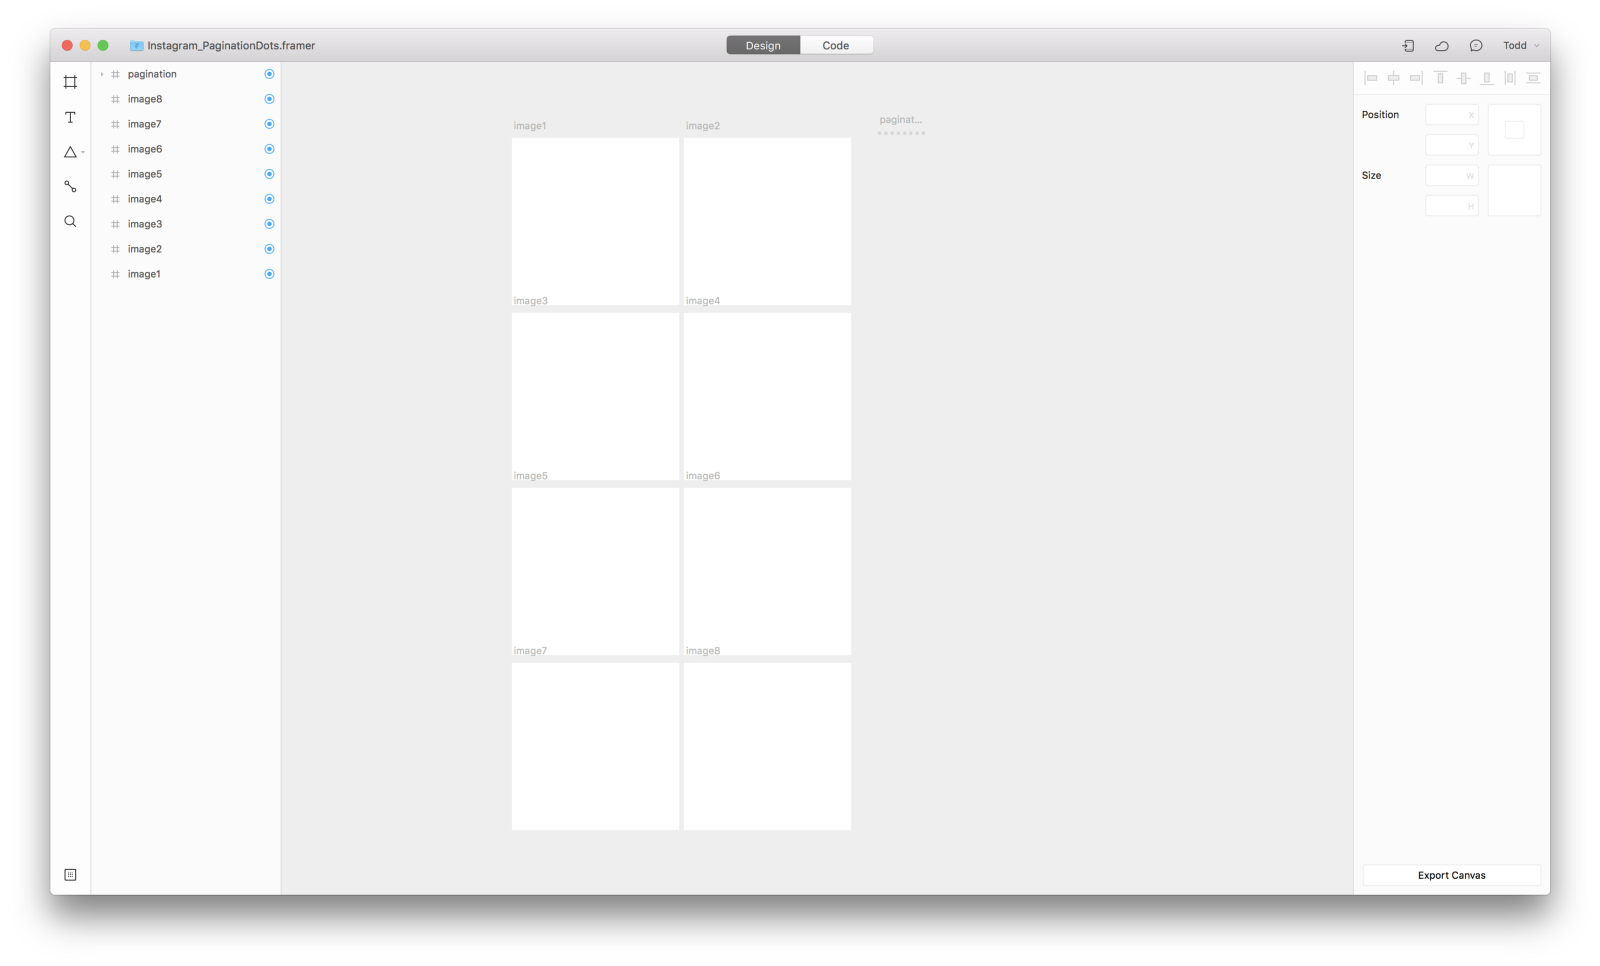 Using Conditions in Framer to Replicate Instagram\'s Pagination Dots